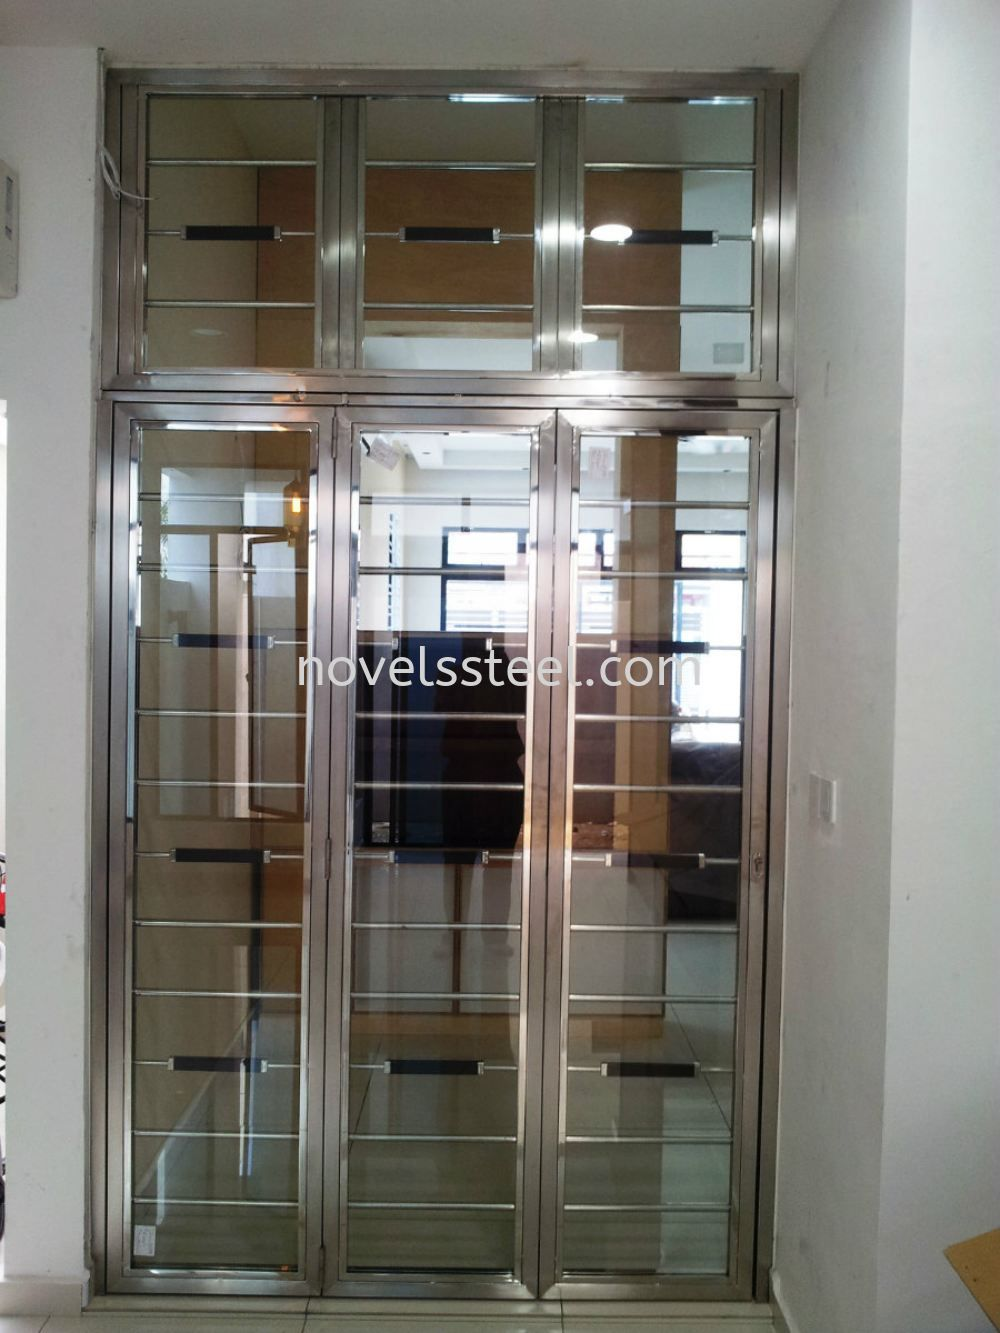 Stainless steel sliding door 014 stainless steel sliding for Door design johor bahru